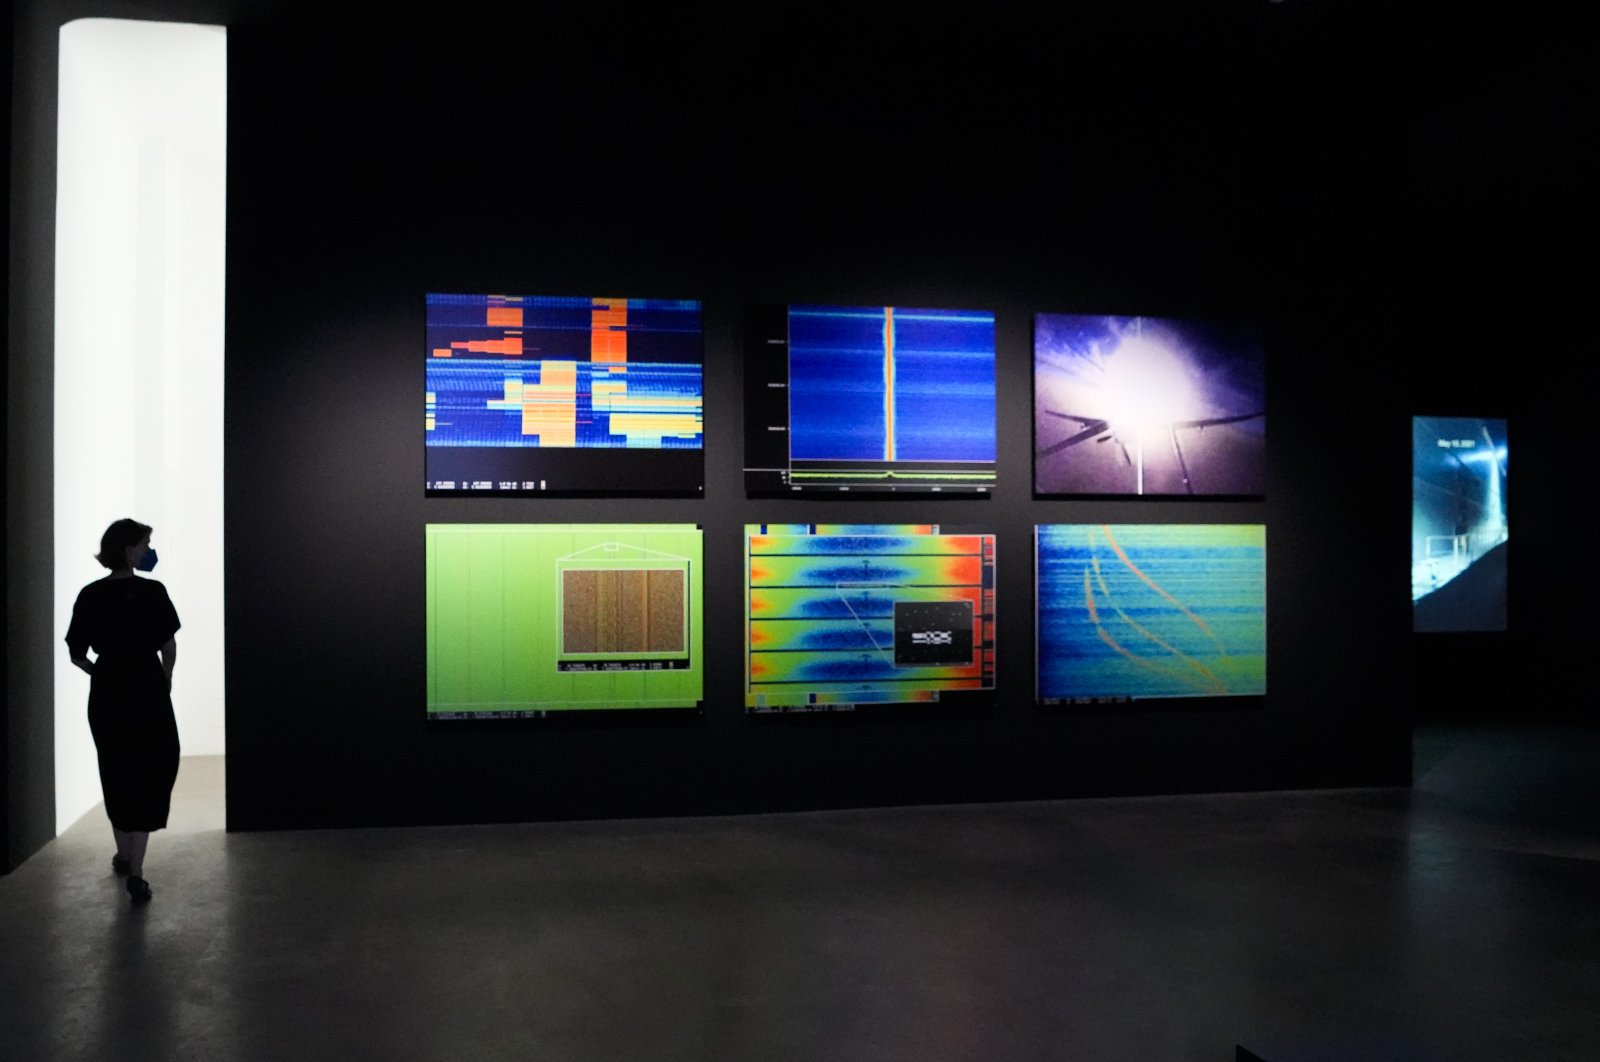 """A woman walks through an exhibition by American artist and filmmaker Laura Poitras, near the art work """"Anarchist"""" by Laura Poitras in collaboration with Henrik Moltke, at the N.K.B. gallery in Berlin, Germany, June 18, 2021. (AP Photo)"""